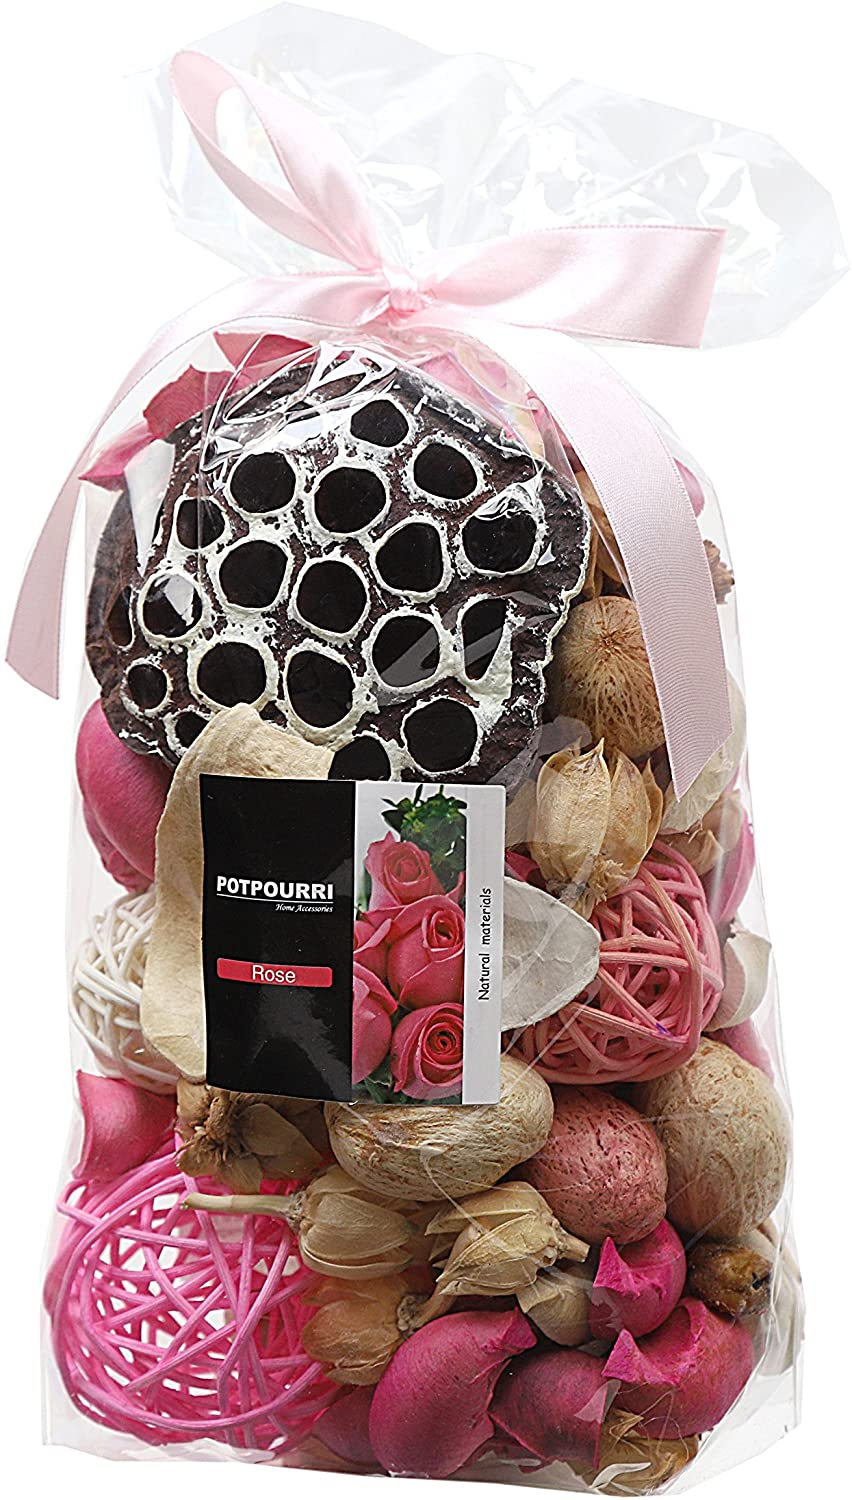 Qingbei Rina Pink Rose Scent Summer Potpourri Dried Flowers,Perfume Sachet, Decorative Bag with Rattan Balls,Lotus Pods, Pine Cones,Dried Plants and Flowers Volume of 60 Oz